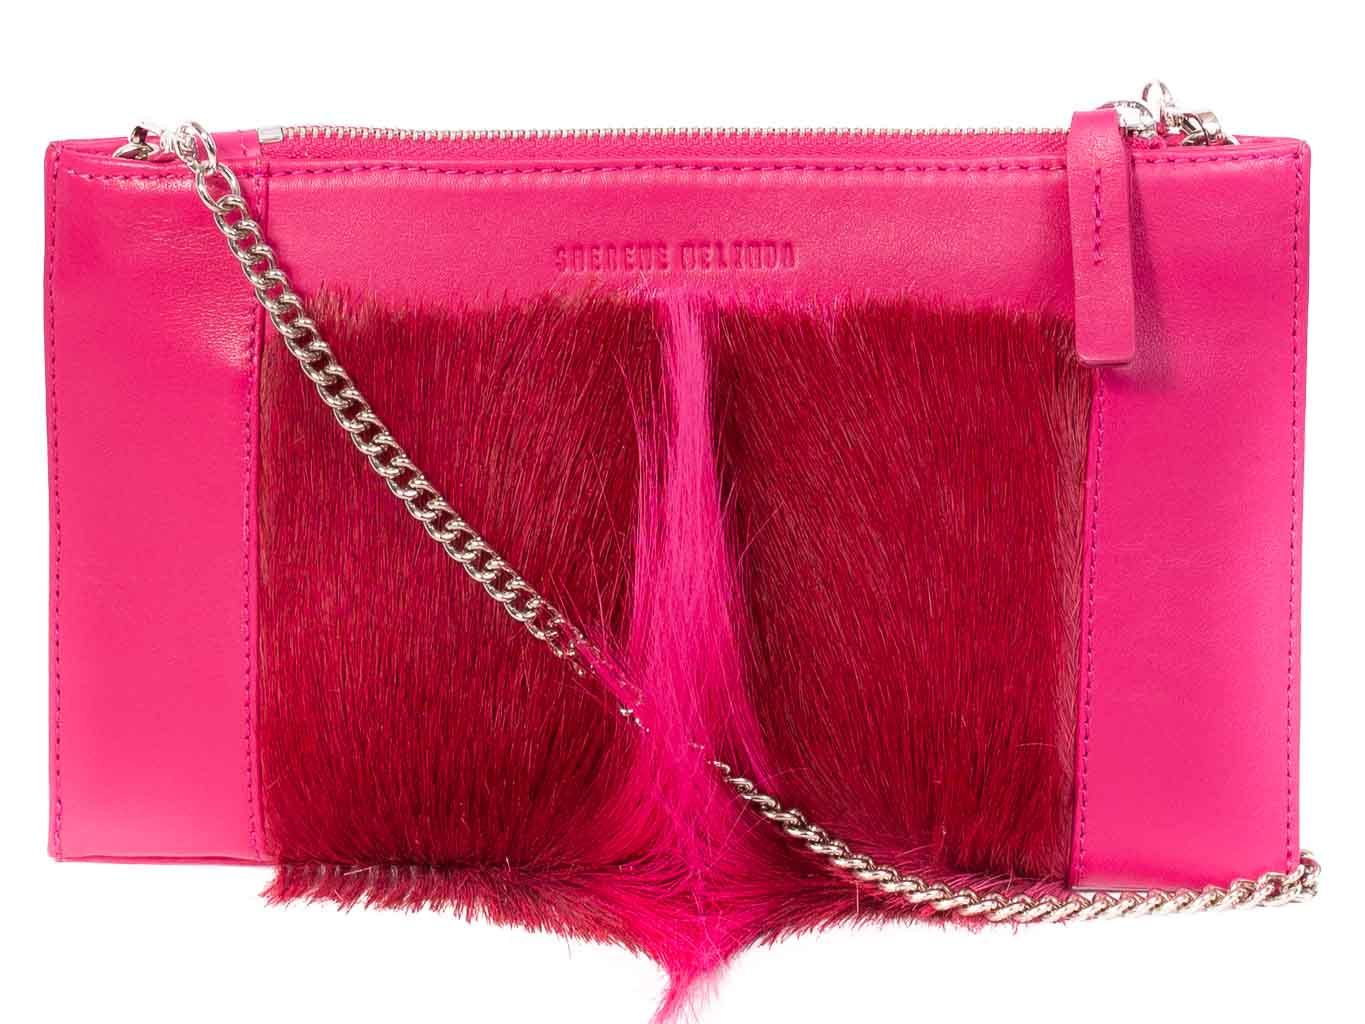 Clutch Springbok Handbag in Fuchsia with a fan feature by Sherene Melinda front strap